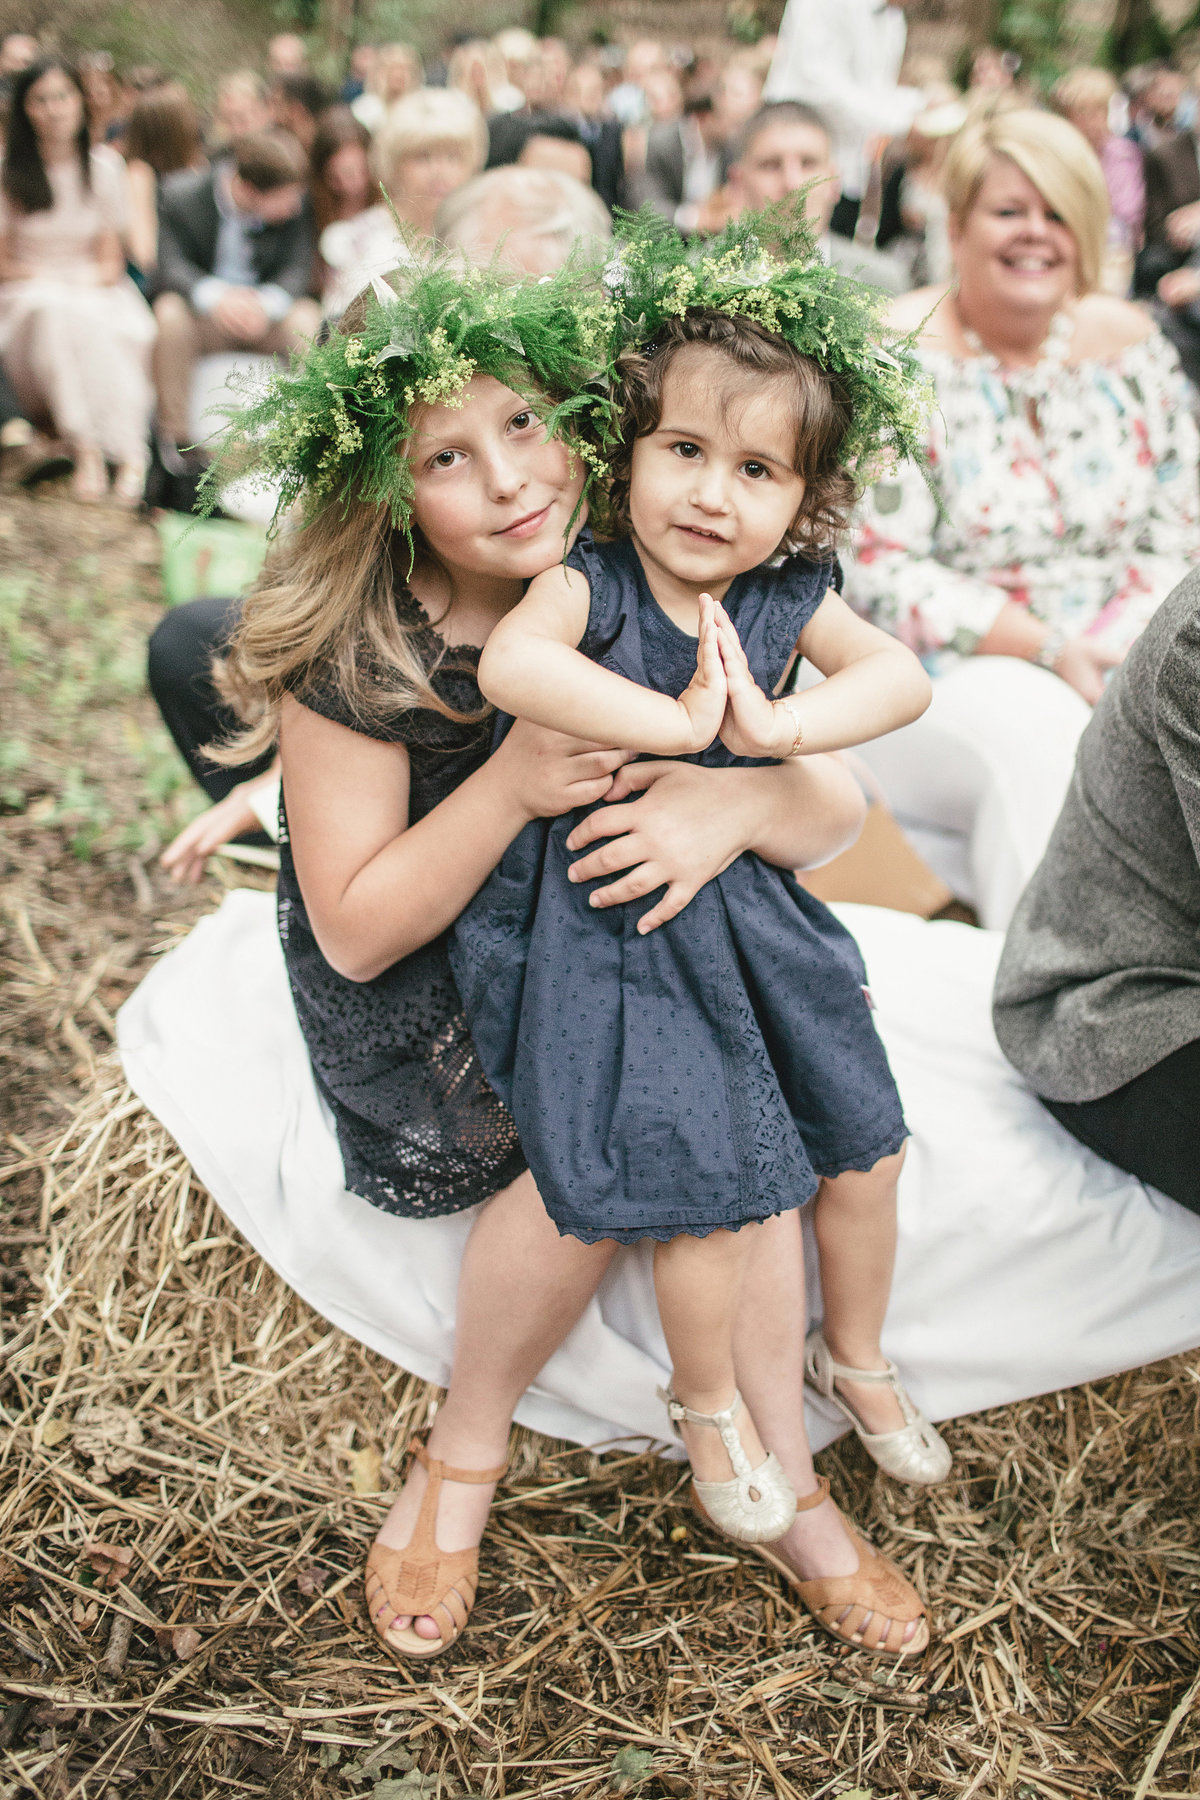 KIDS AT OUTDOOR WEDDING